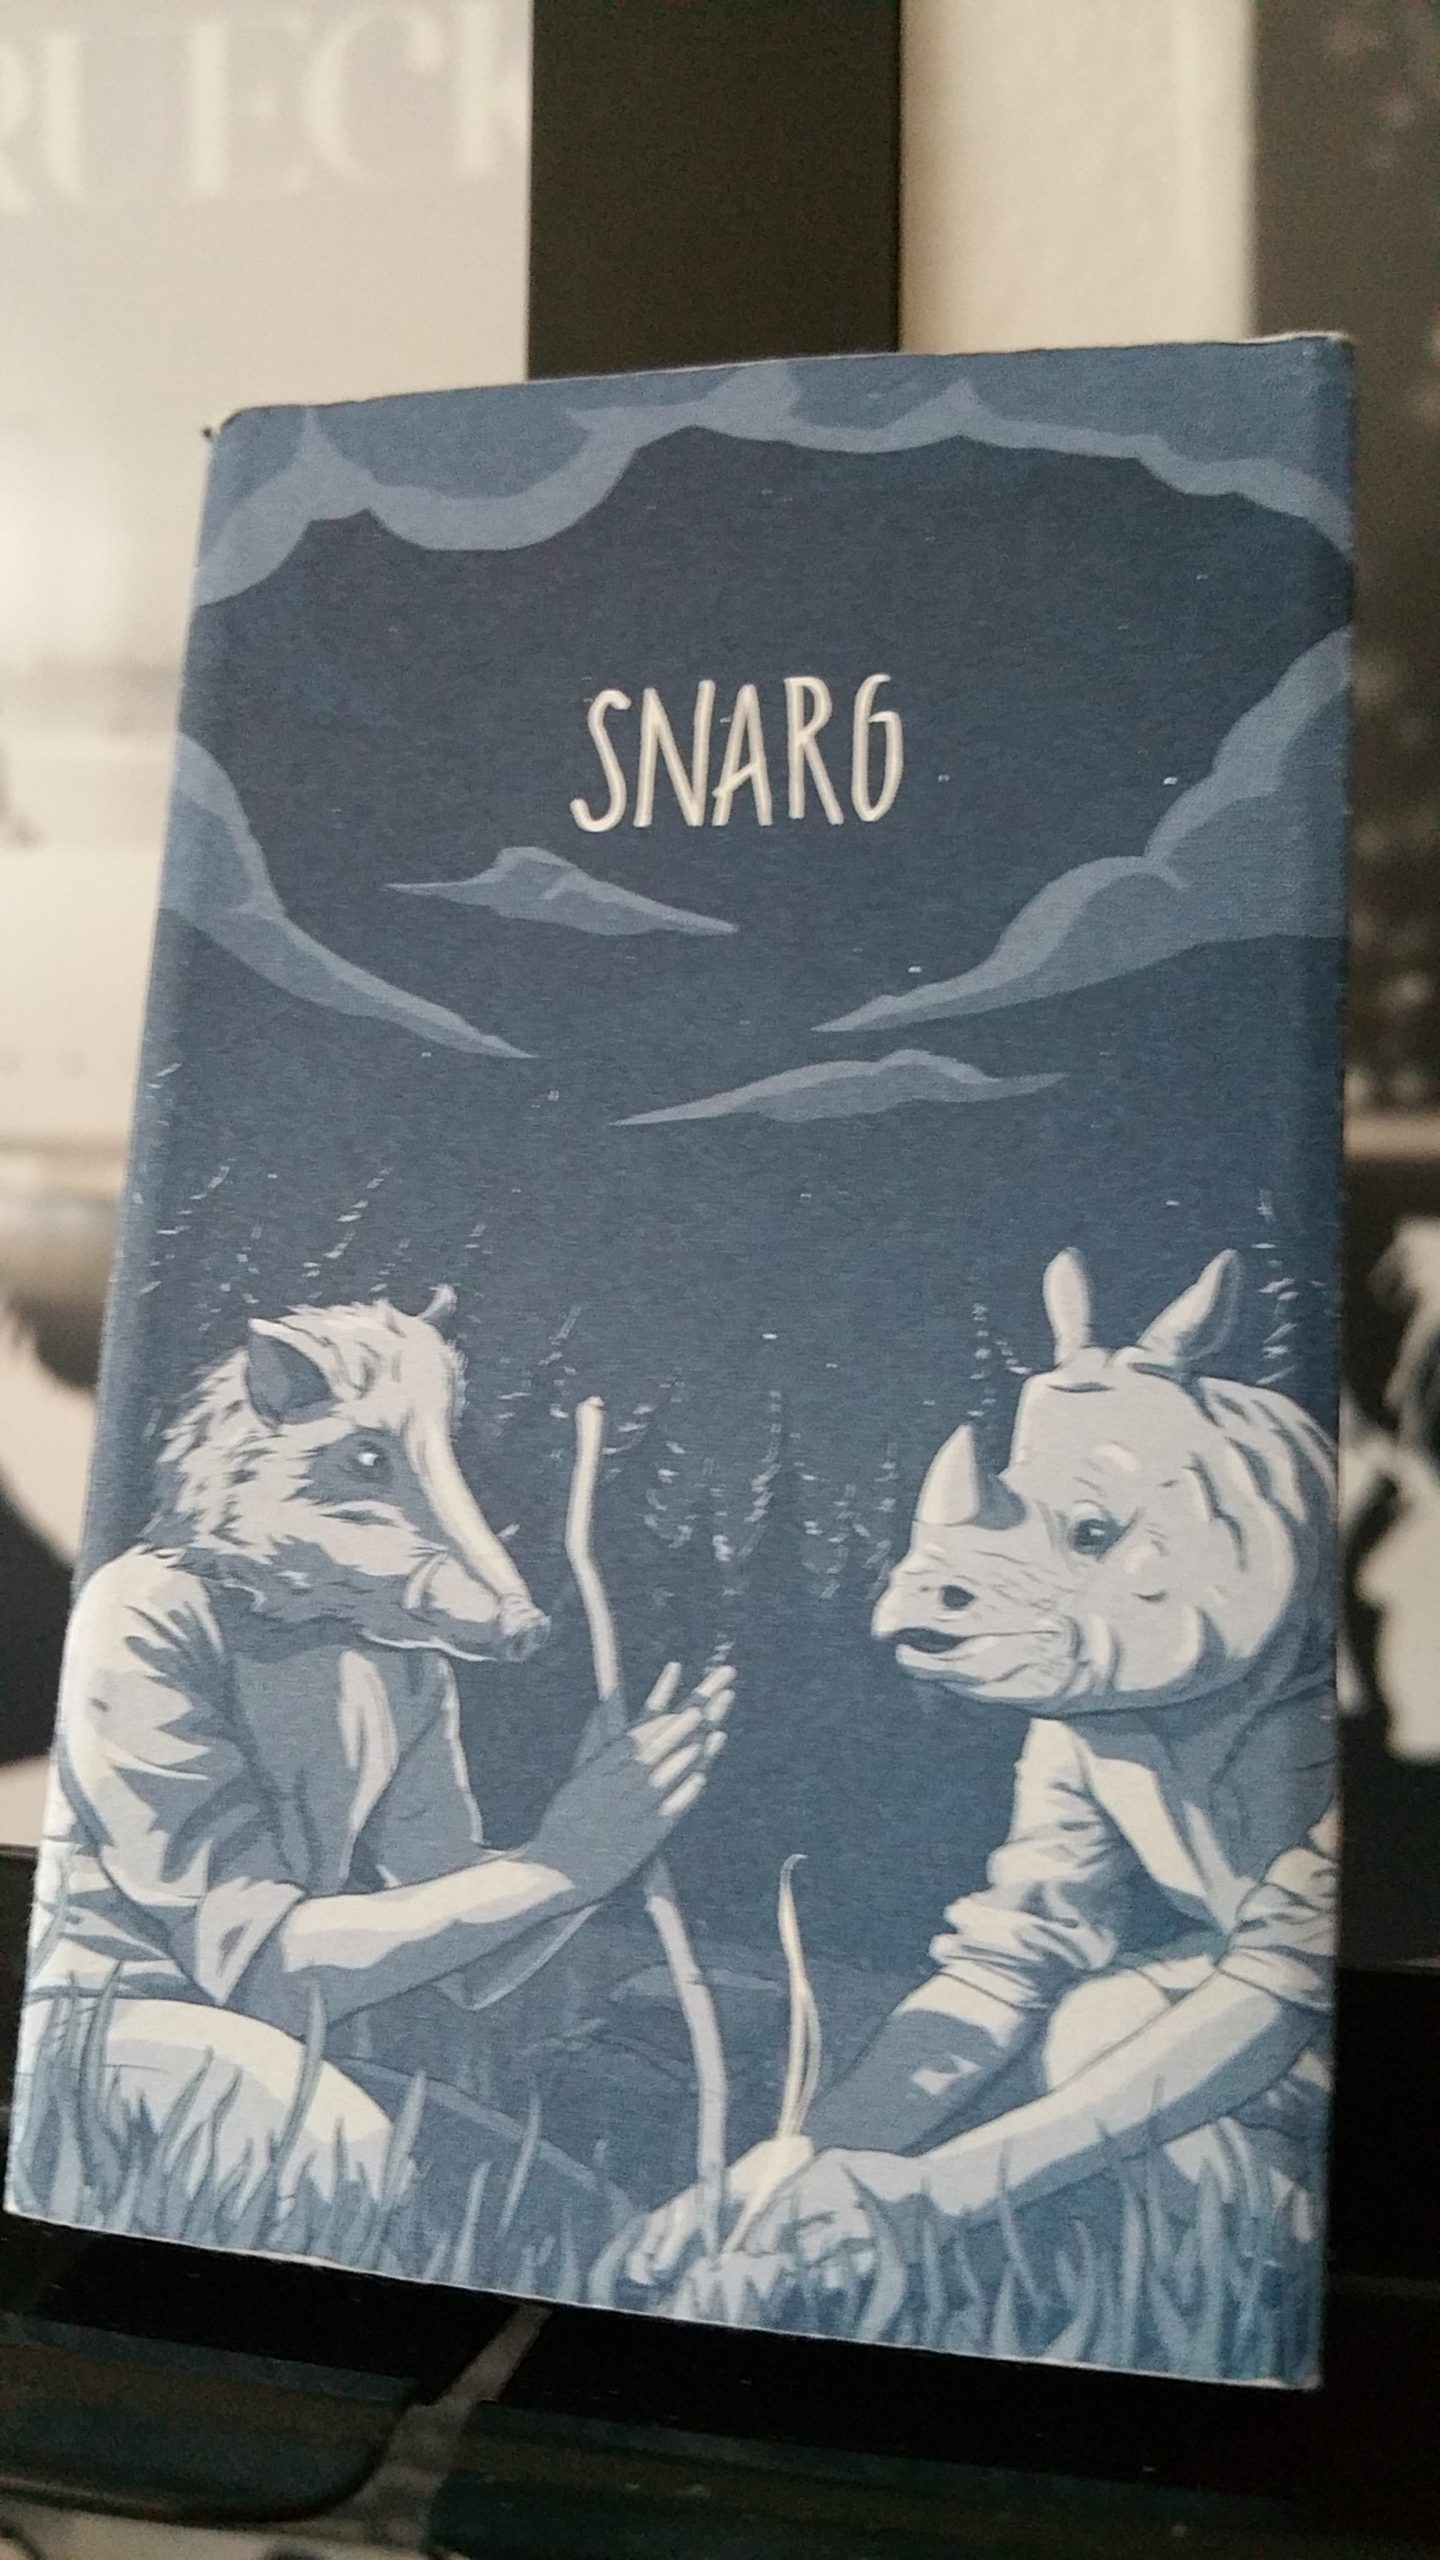 review: SNARG s/t // Snarg II // split 7inch